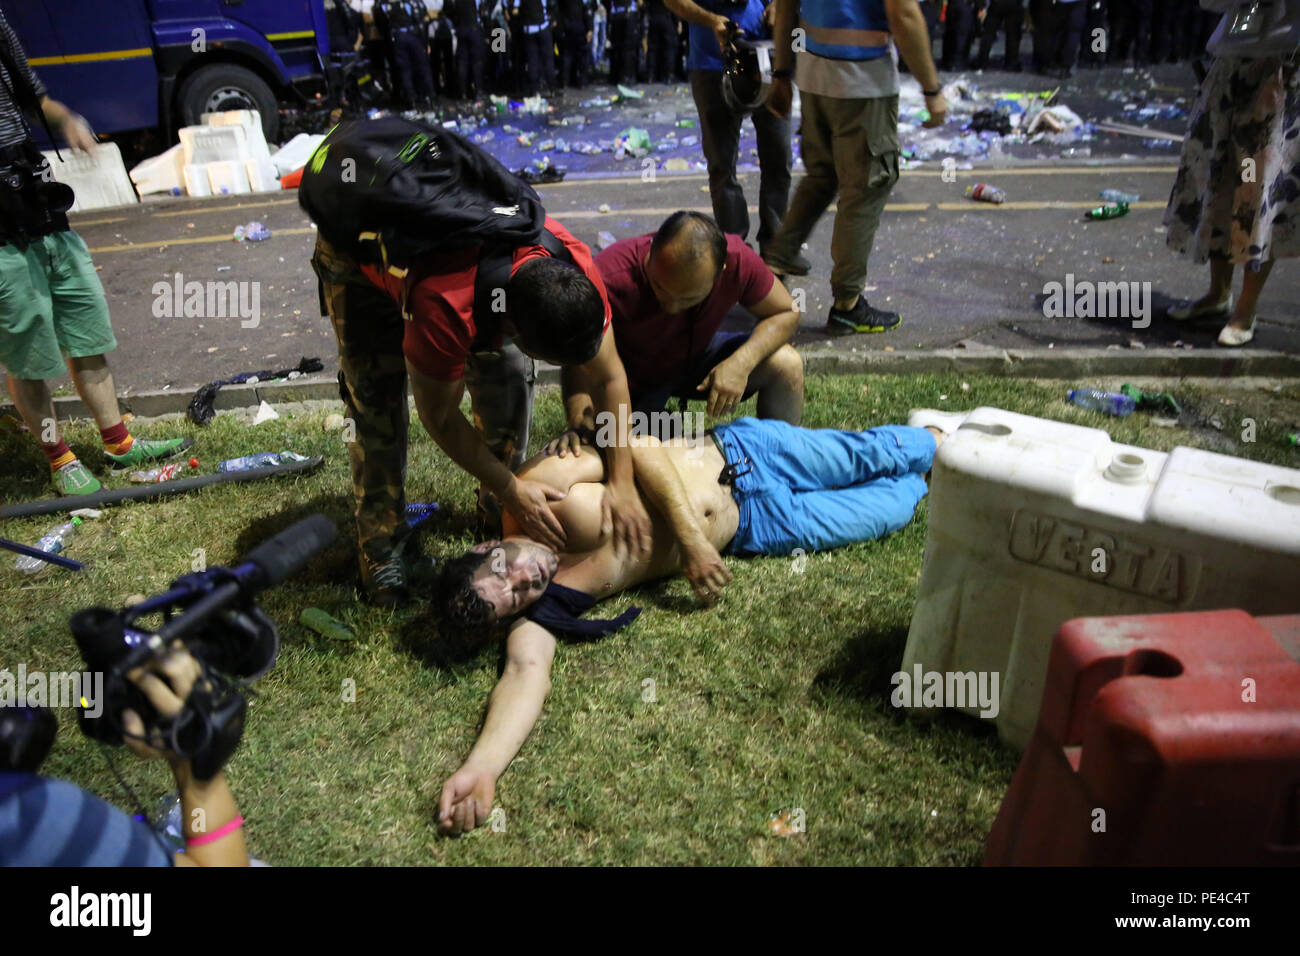 Bucharest, Romania - August 10, 2018:  An injured football supporter by tear gas receives help during the violent anti-government protest in Bucharest - Stock Image